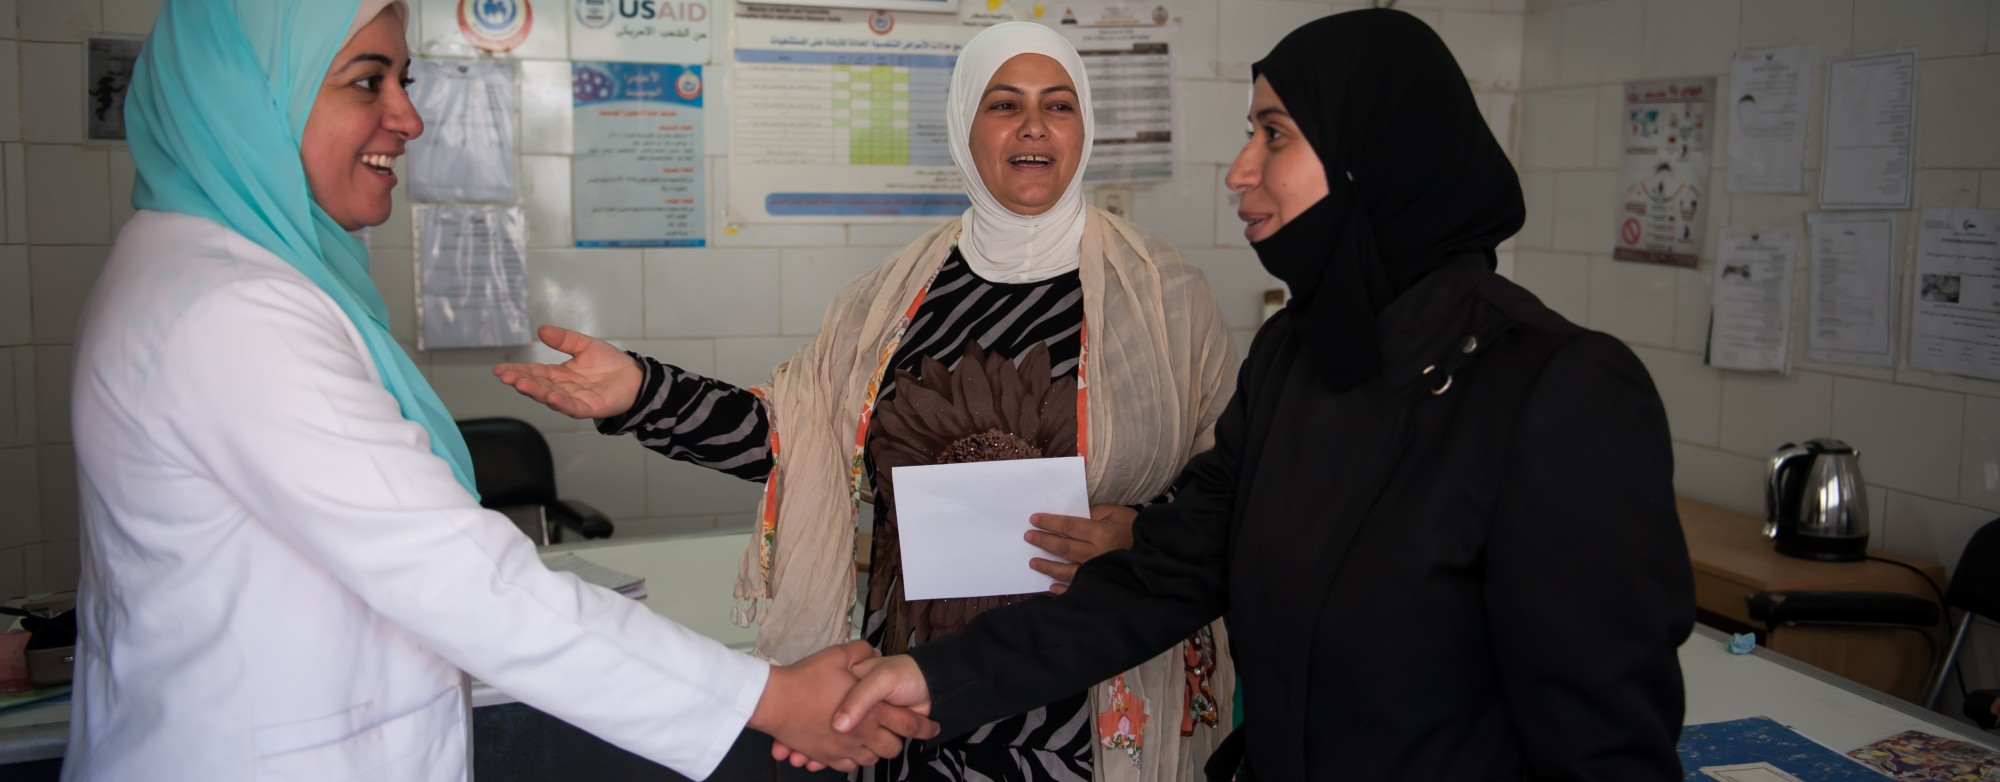 Outreach workers like Fadia Abdel Meguir serve as a bridge, connecting fellow refugees to the health services they need.